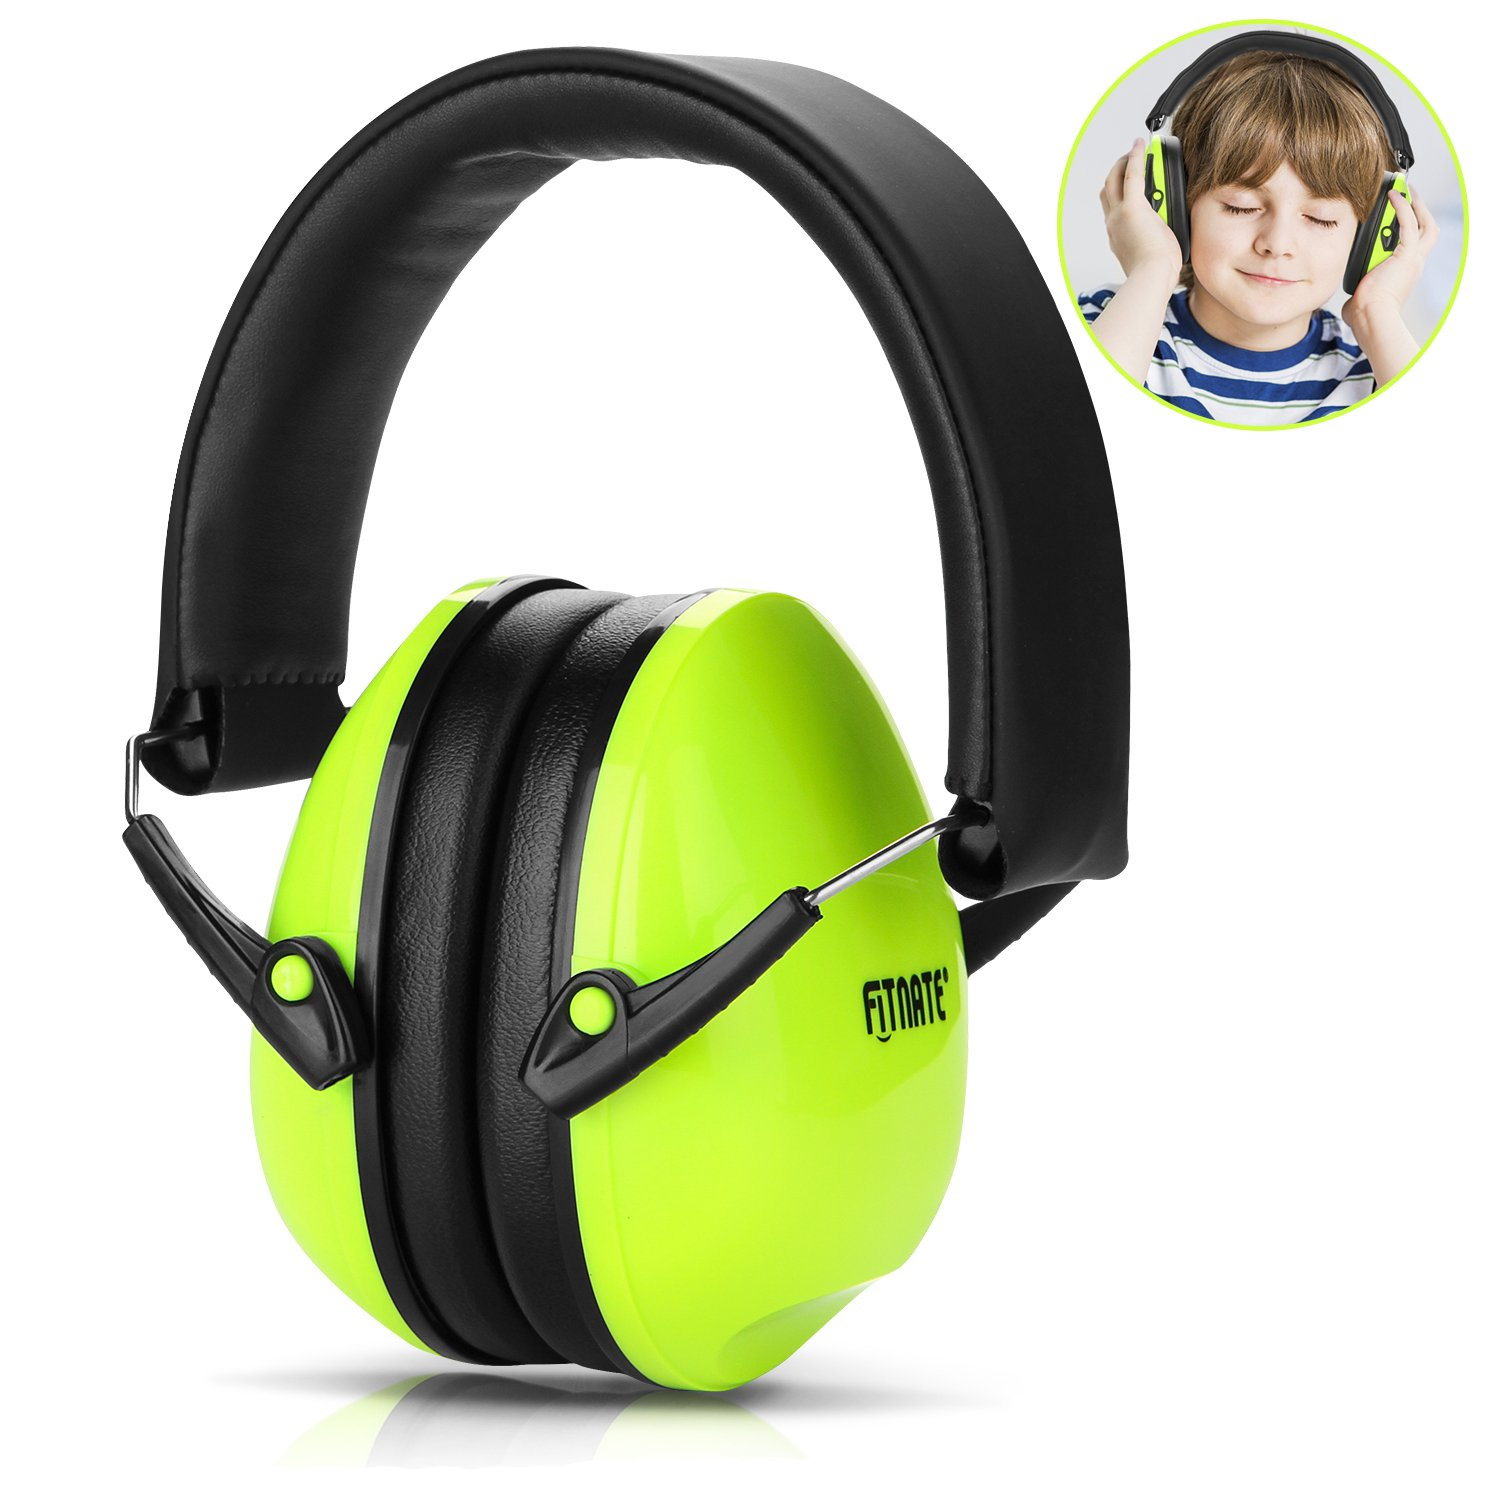 Baby Ear Muffs, FITNATE Safety Infant Ear Protection, NRR26, SNR29 Professional Noise Reduction Adjustable Head Band Ear Defenders for Babies, Toddles and Kids (Color)